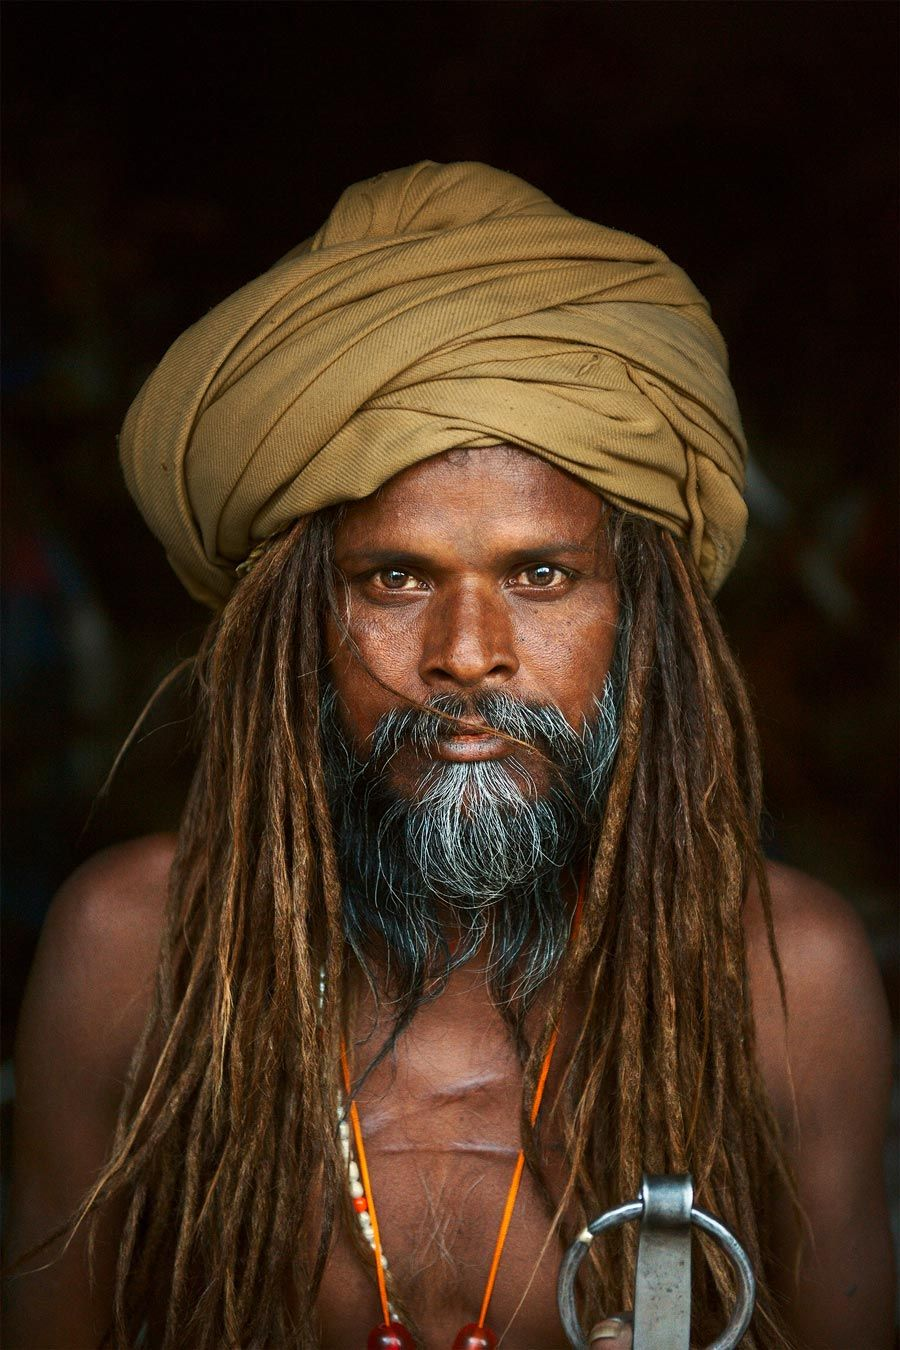 hindu single men in mc quady Browse photo profiles & contact who are hindu, religion on australia's #1 dating  site rsvp free to browse & join.